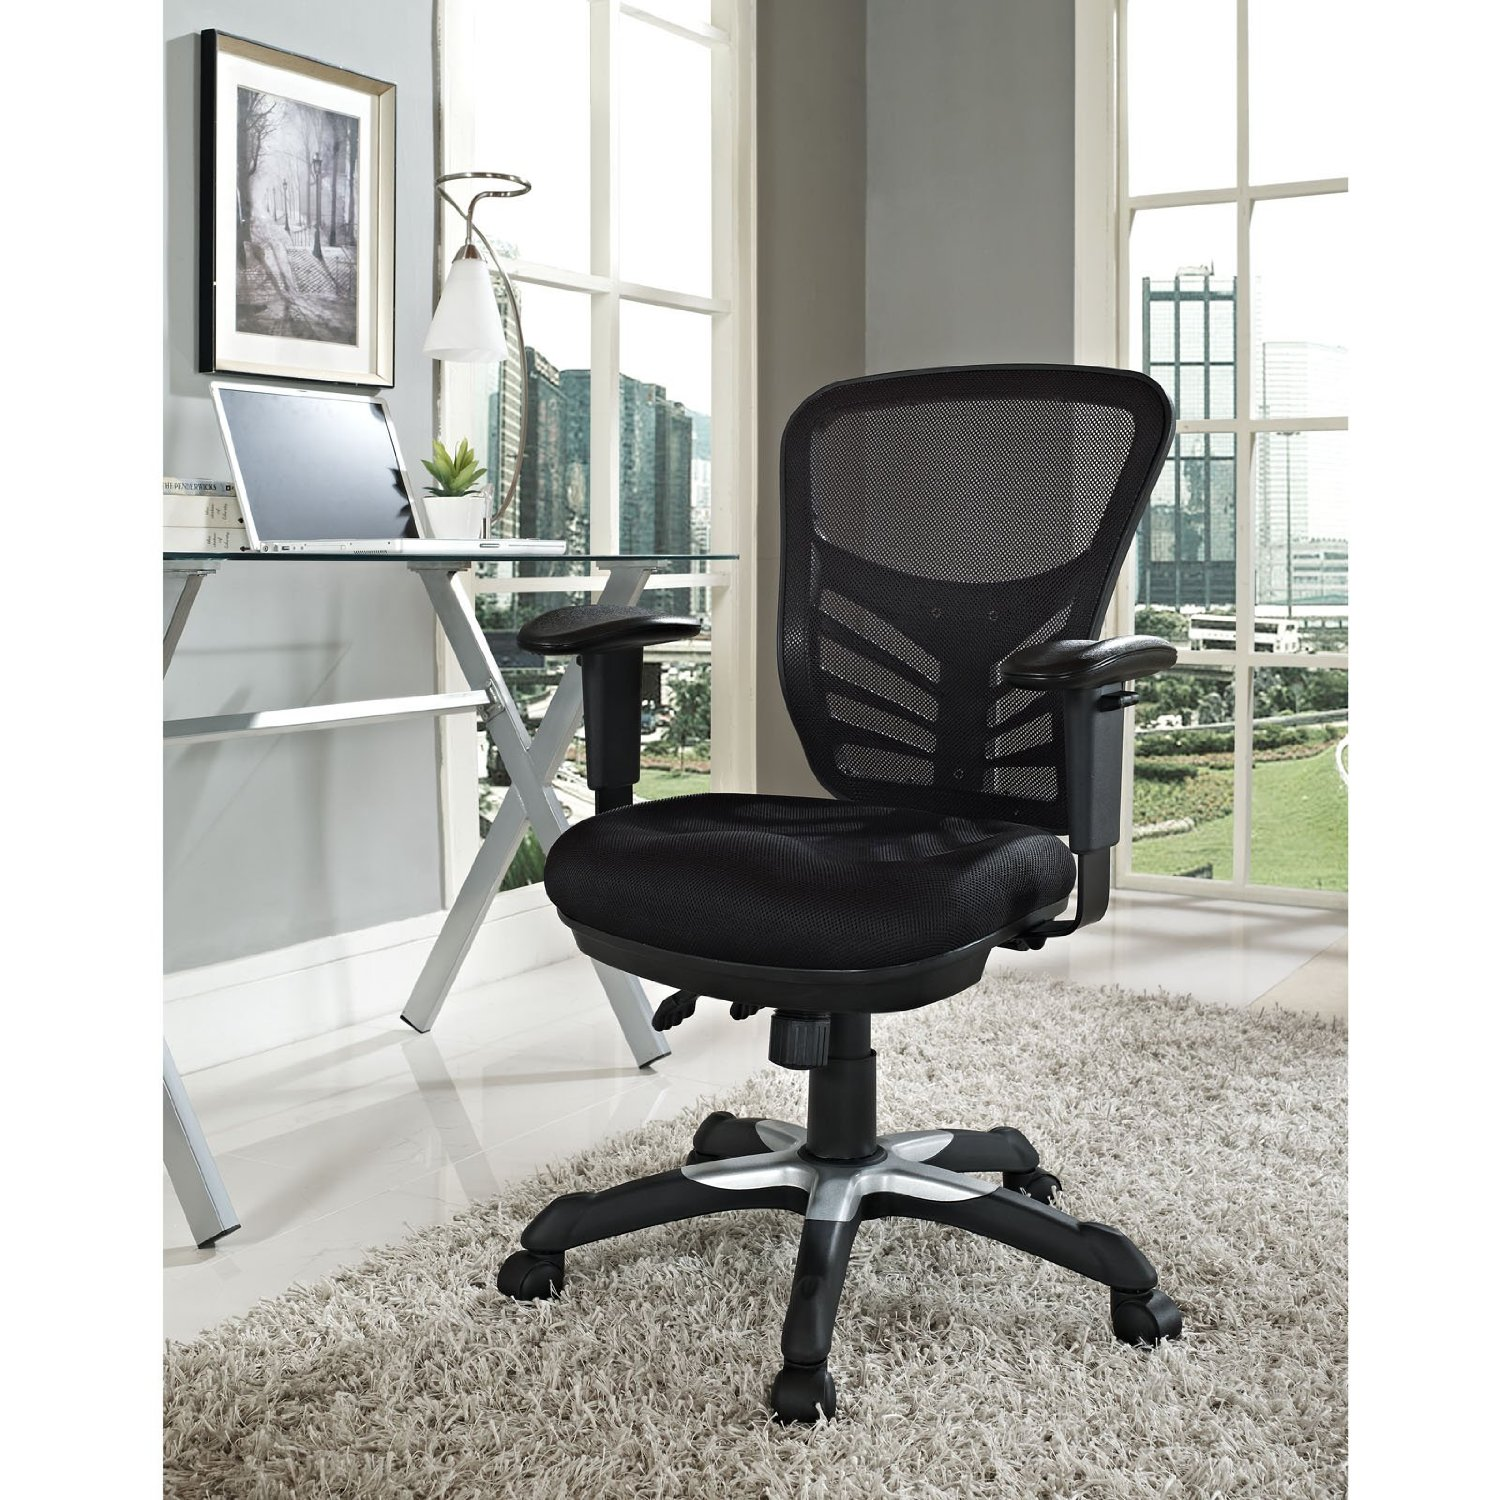 mesh gaming chair bedroom leather the 10 best chairs to protect your spine and back